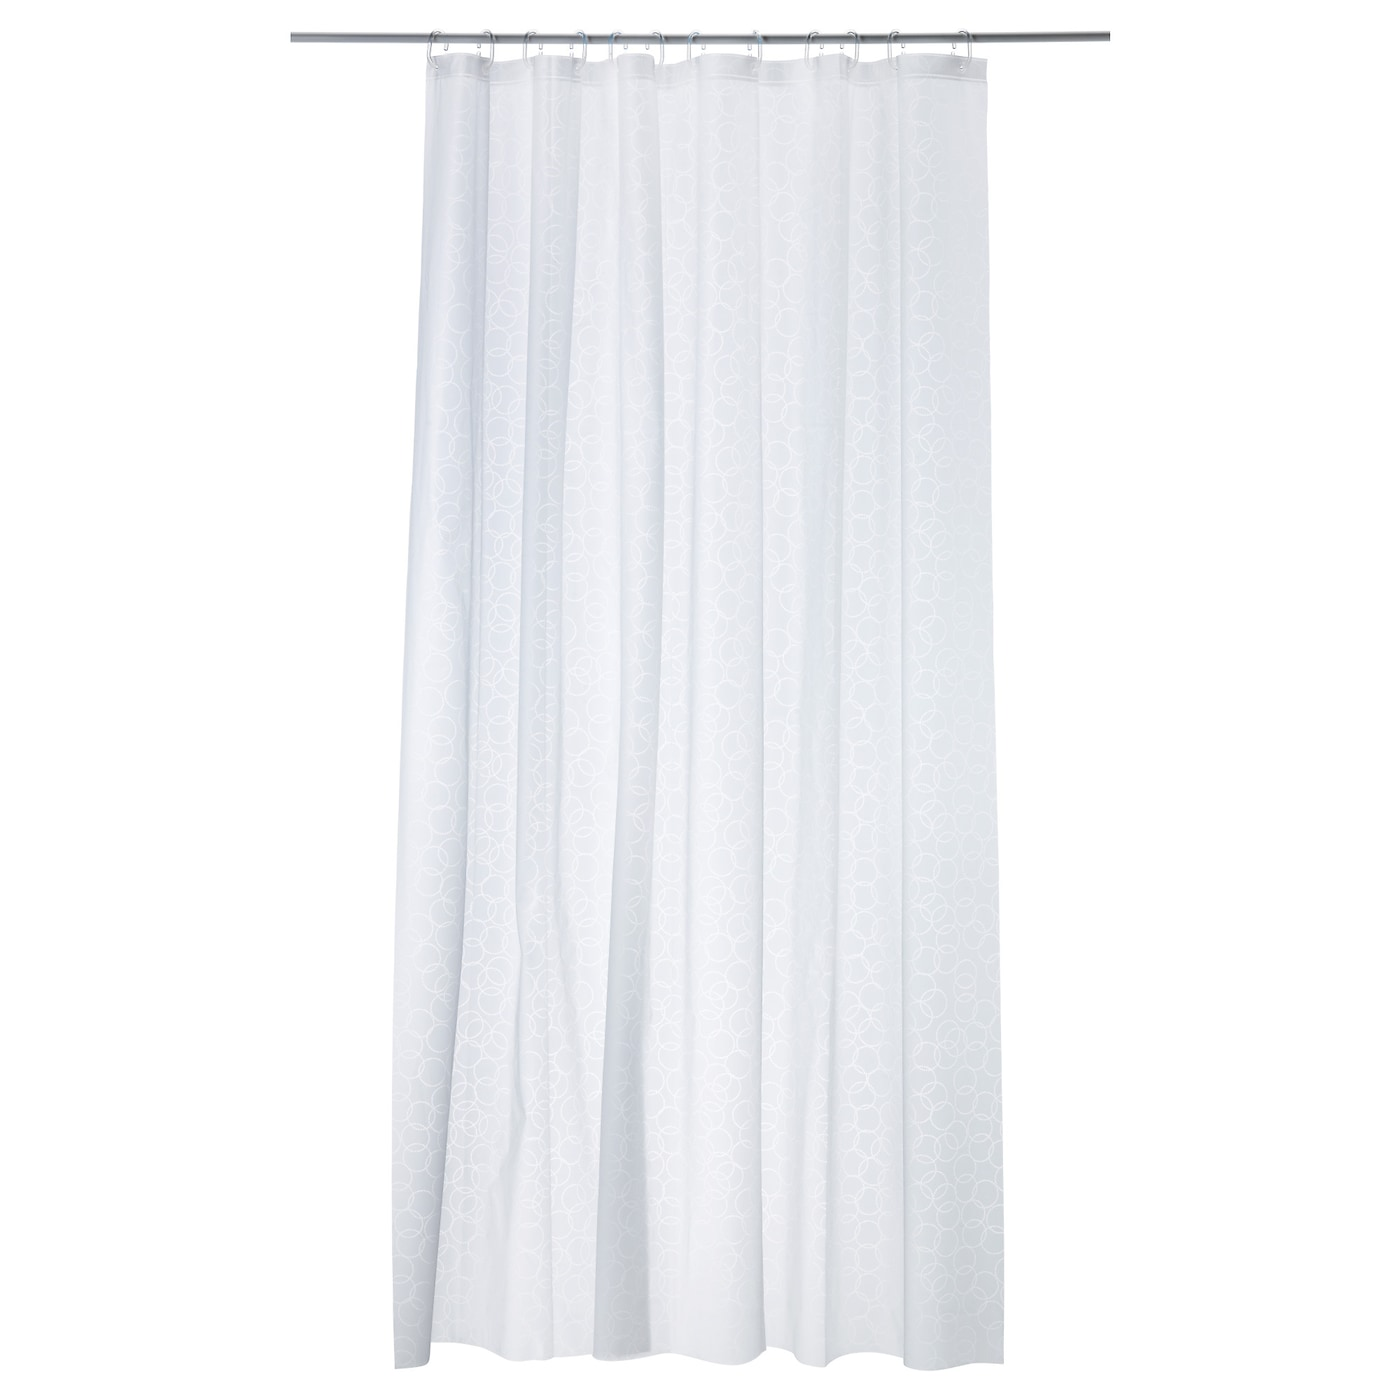 shower curtains ikea bathtub shower curtains icsdri org